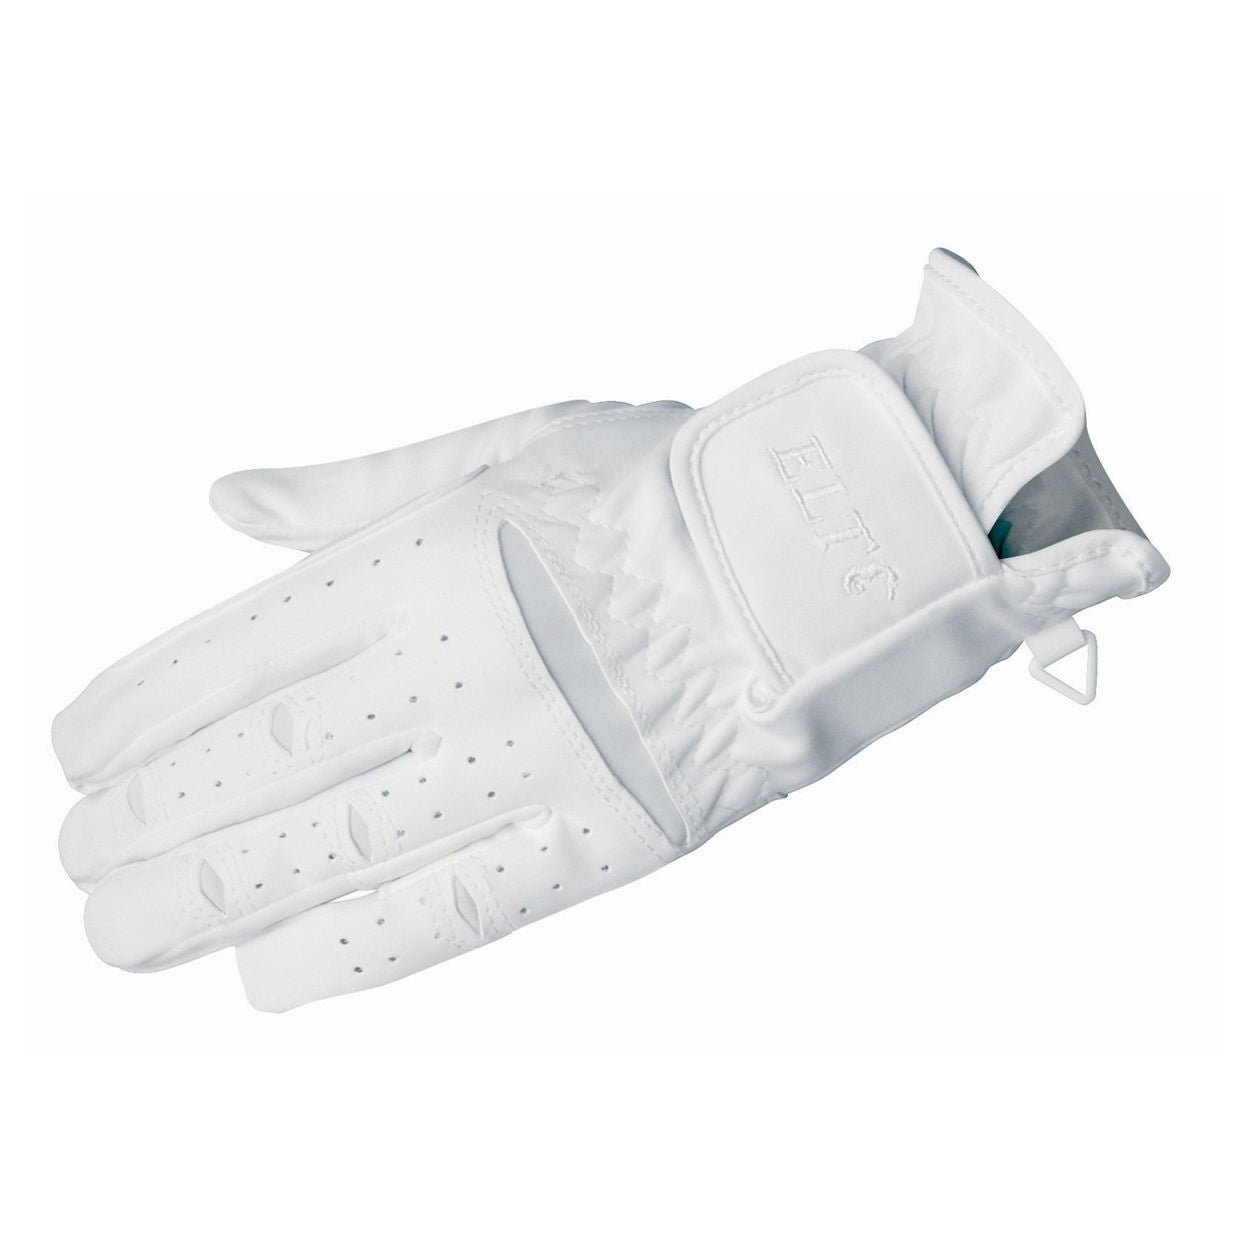 Photo of ELT Action Horse Riding Gloves in White